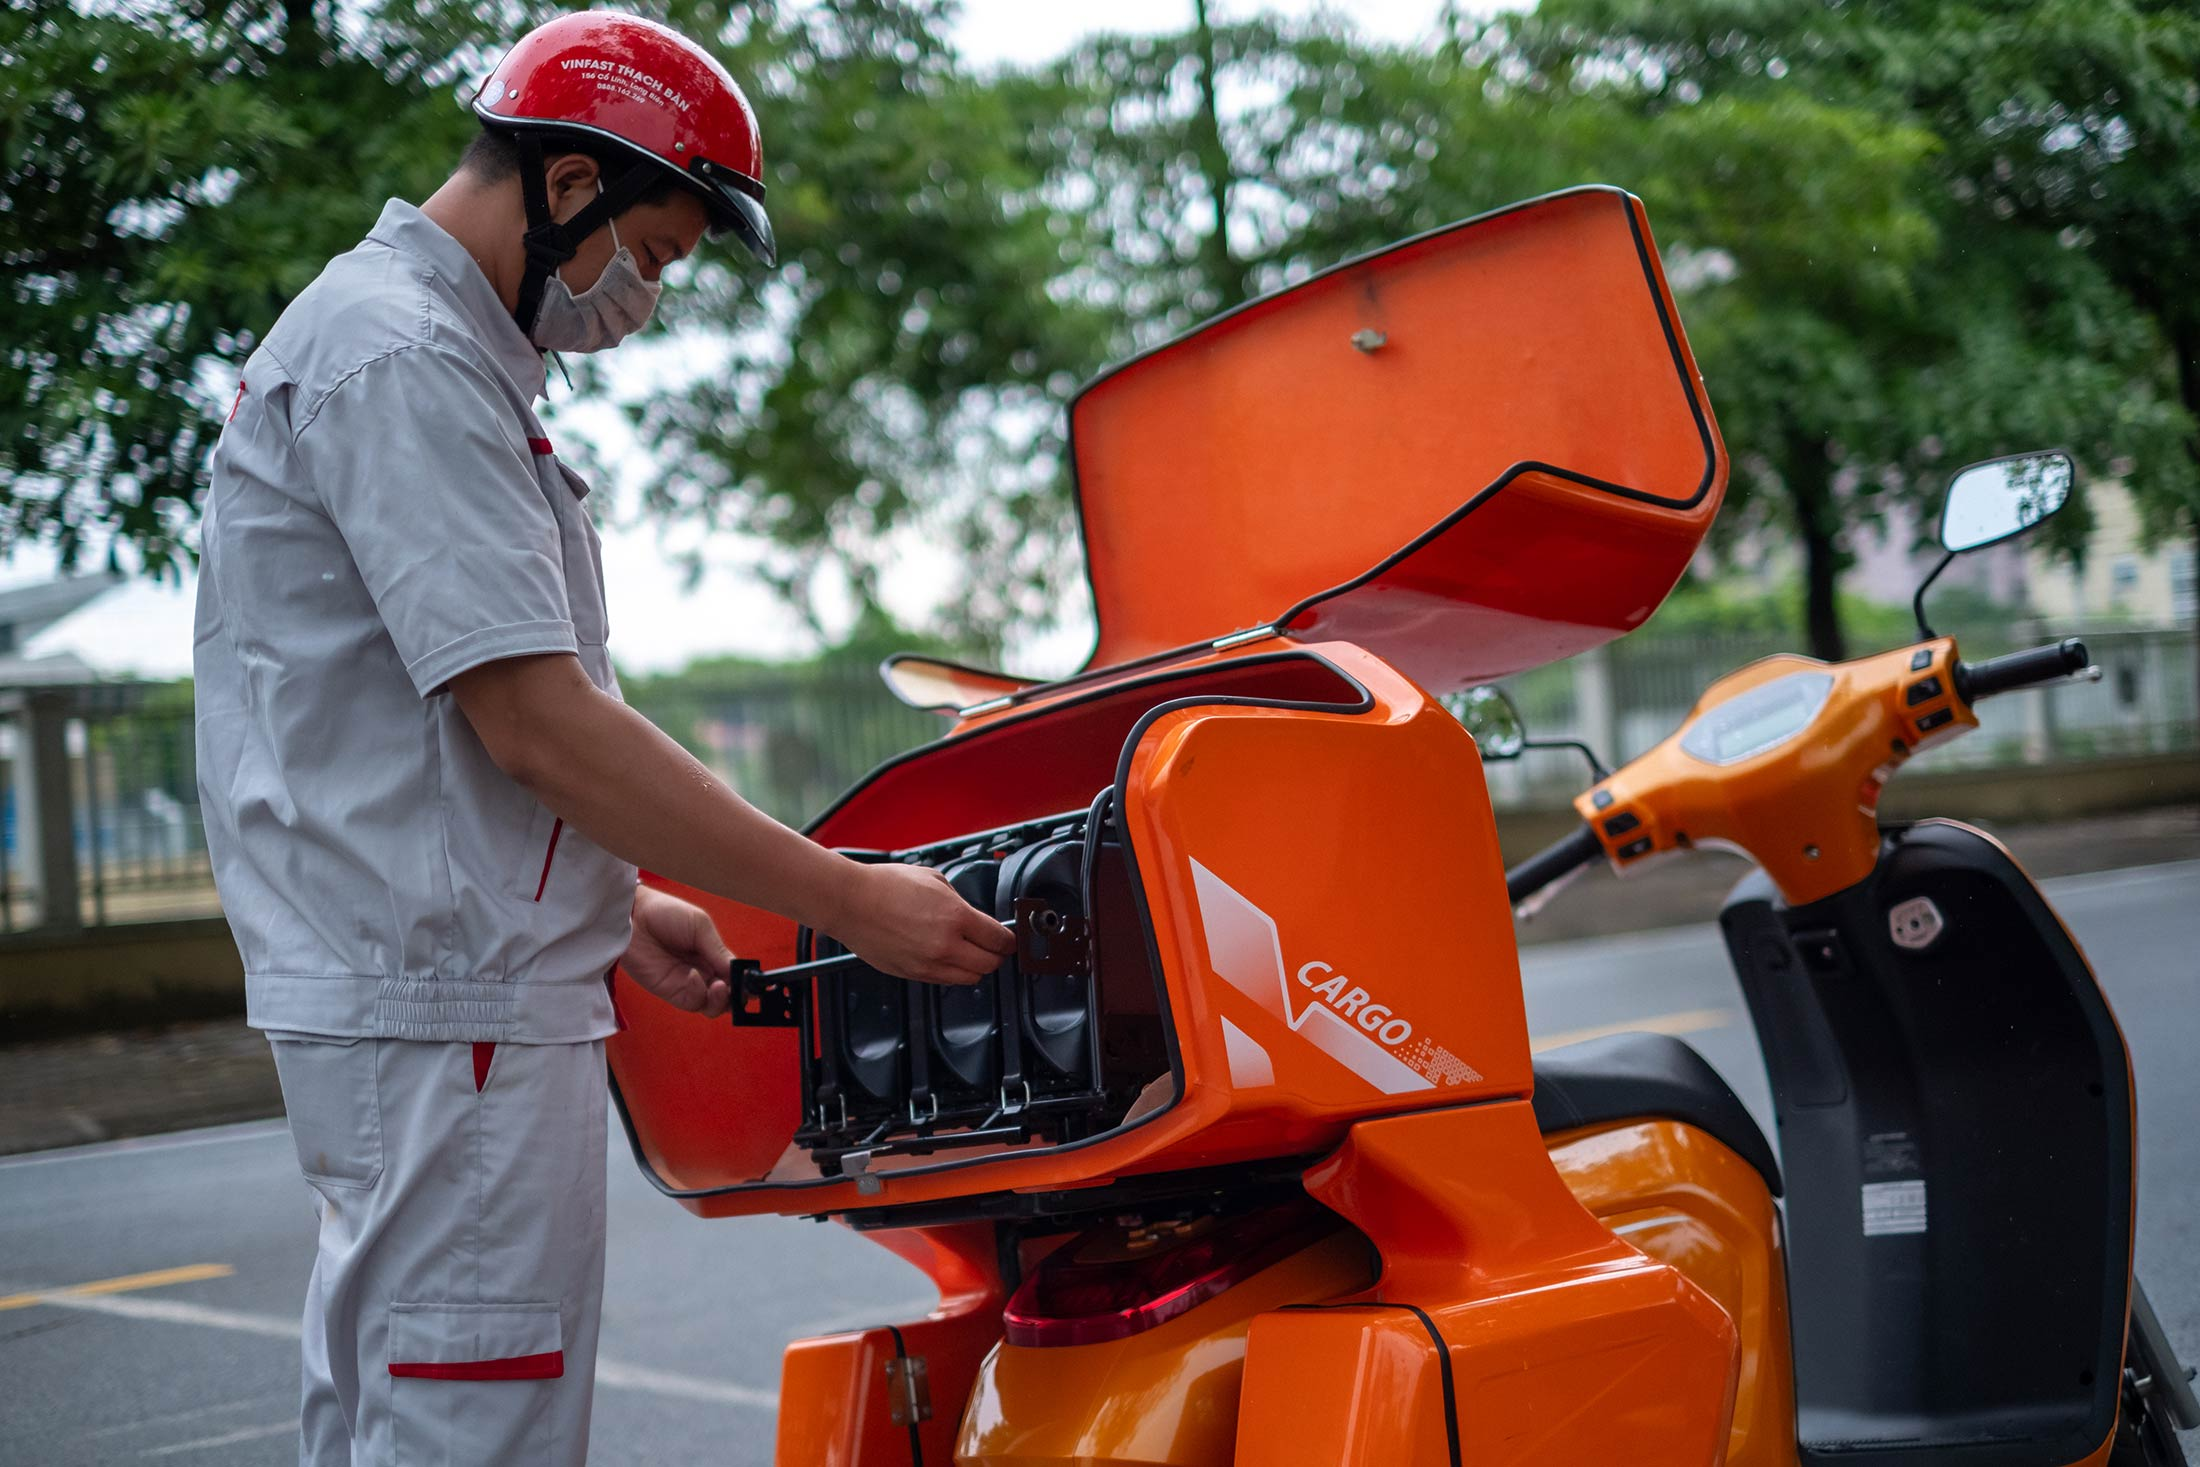 relates to A Billionaire Is Bringing Electric Motorbikes to Vietnam